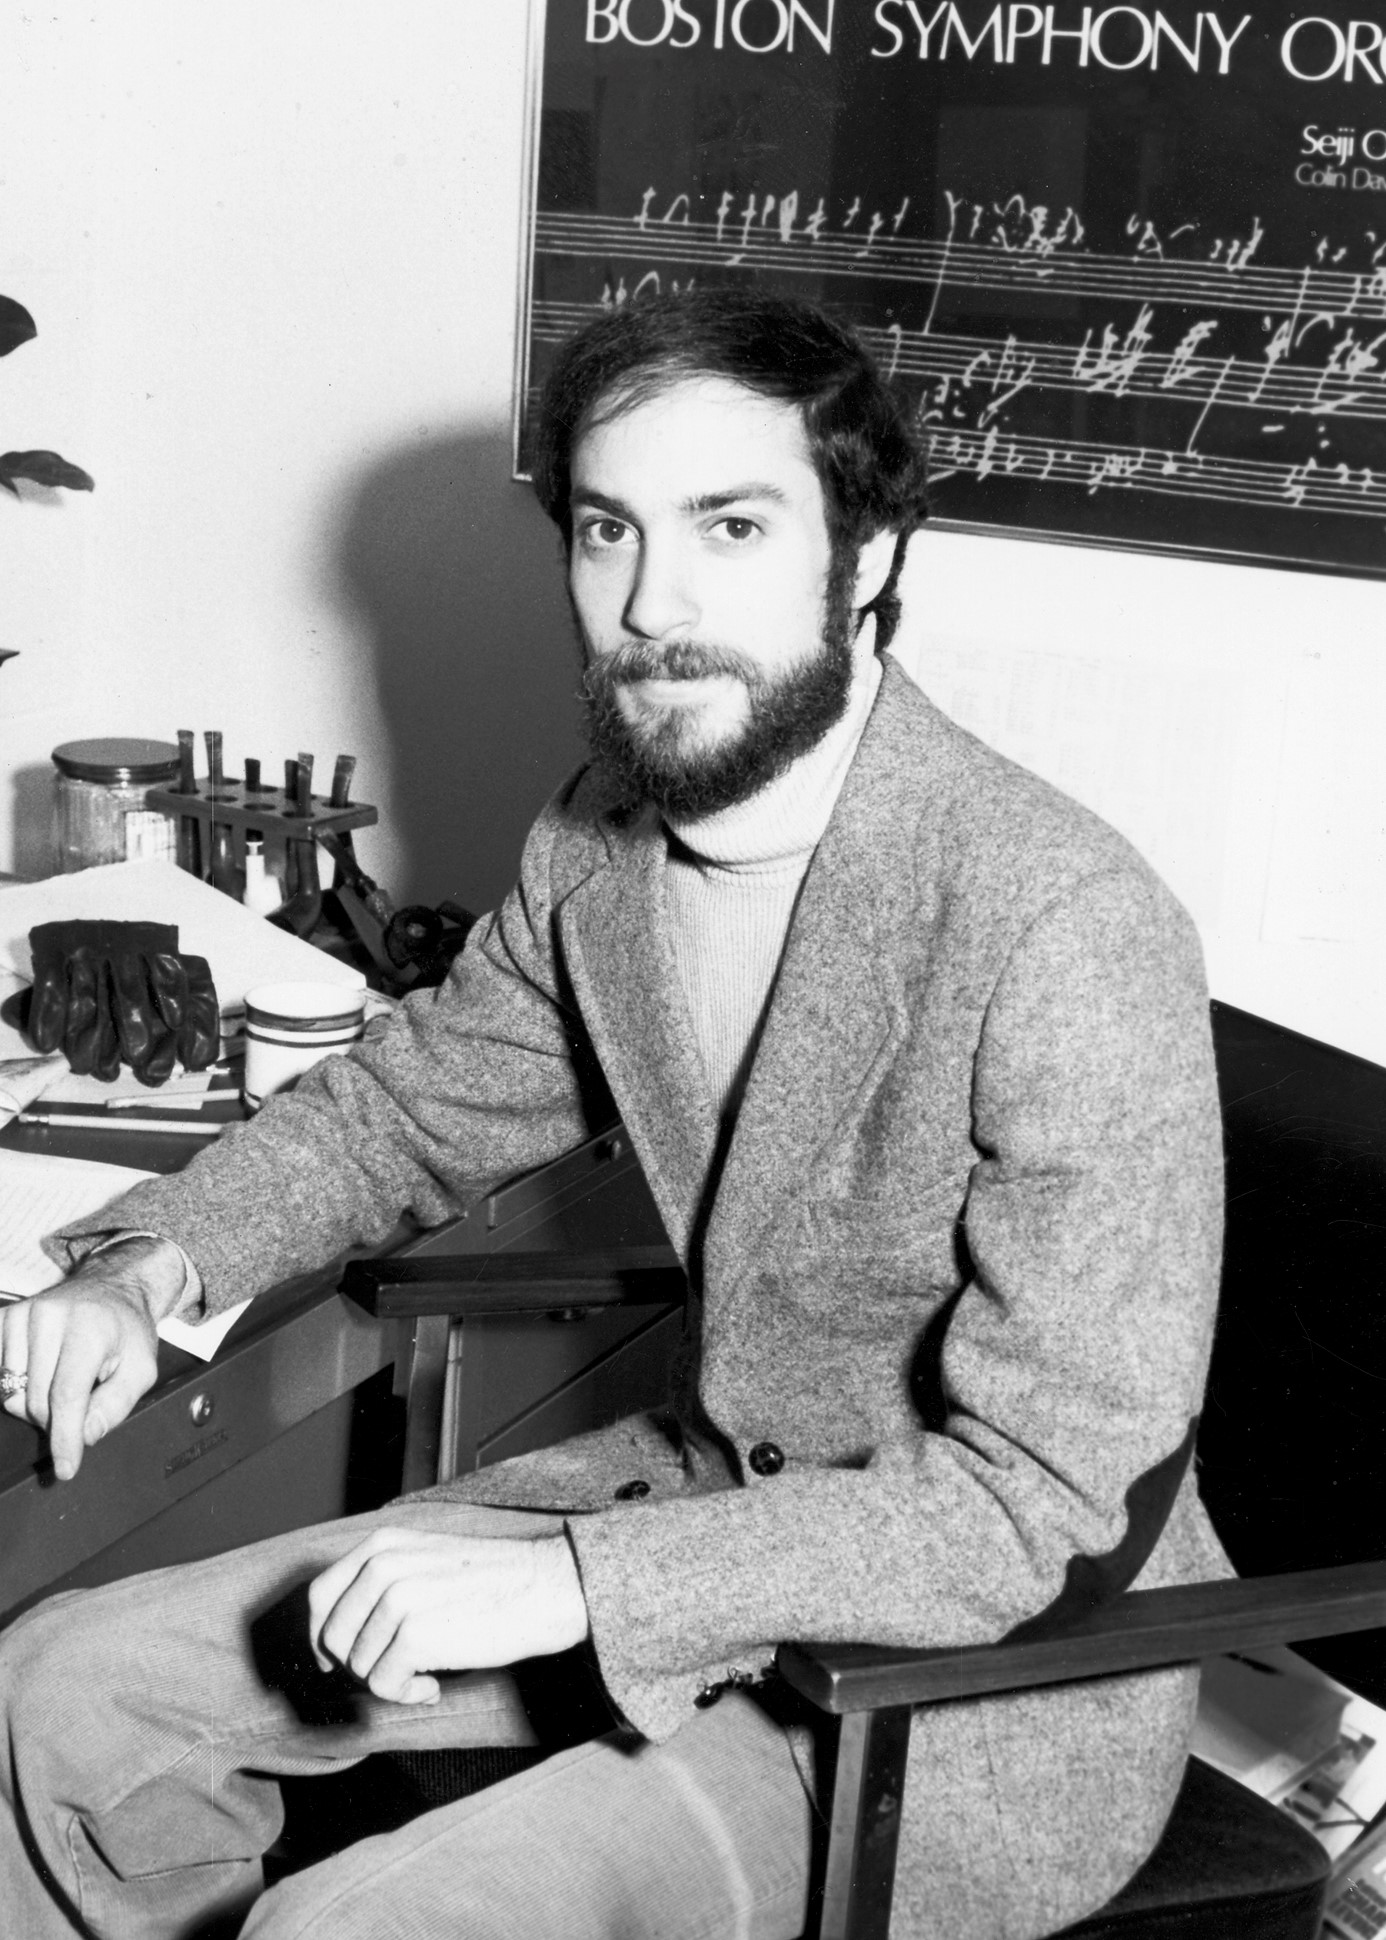 Professor Aaron Nurick in his office at Bentley, circa 1980